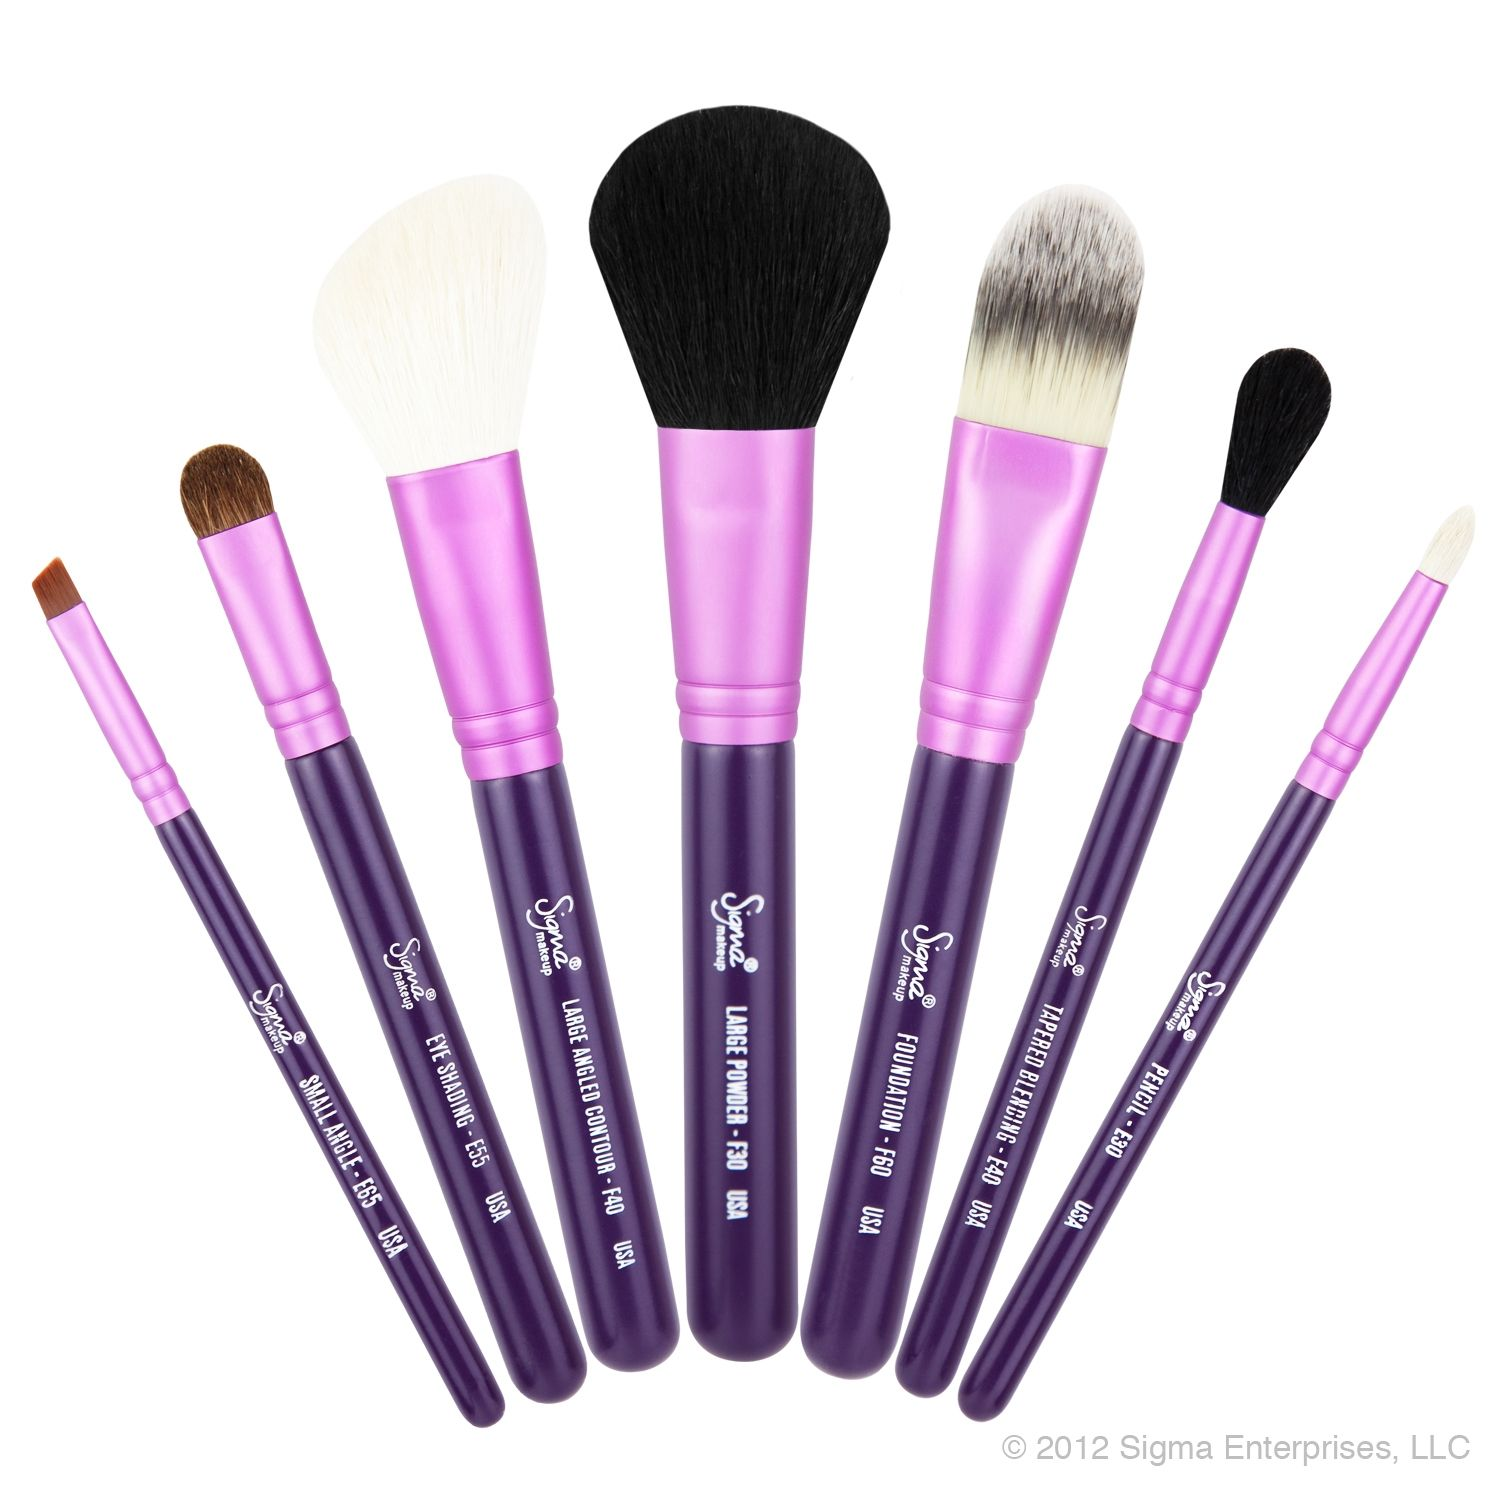 Travel Kit Sigma Makeup Brushes. Arriving Tuesday from